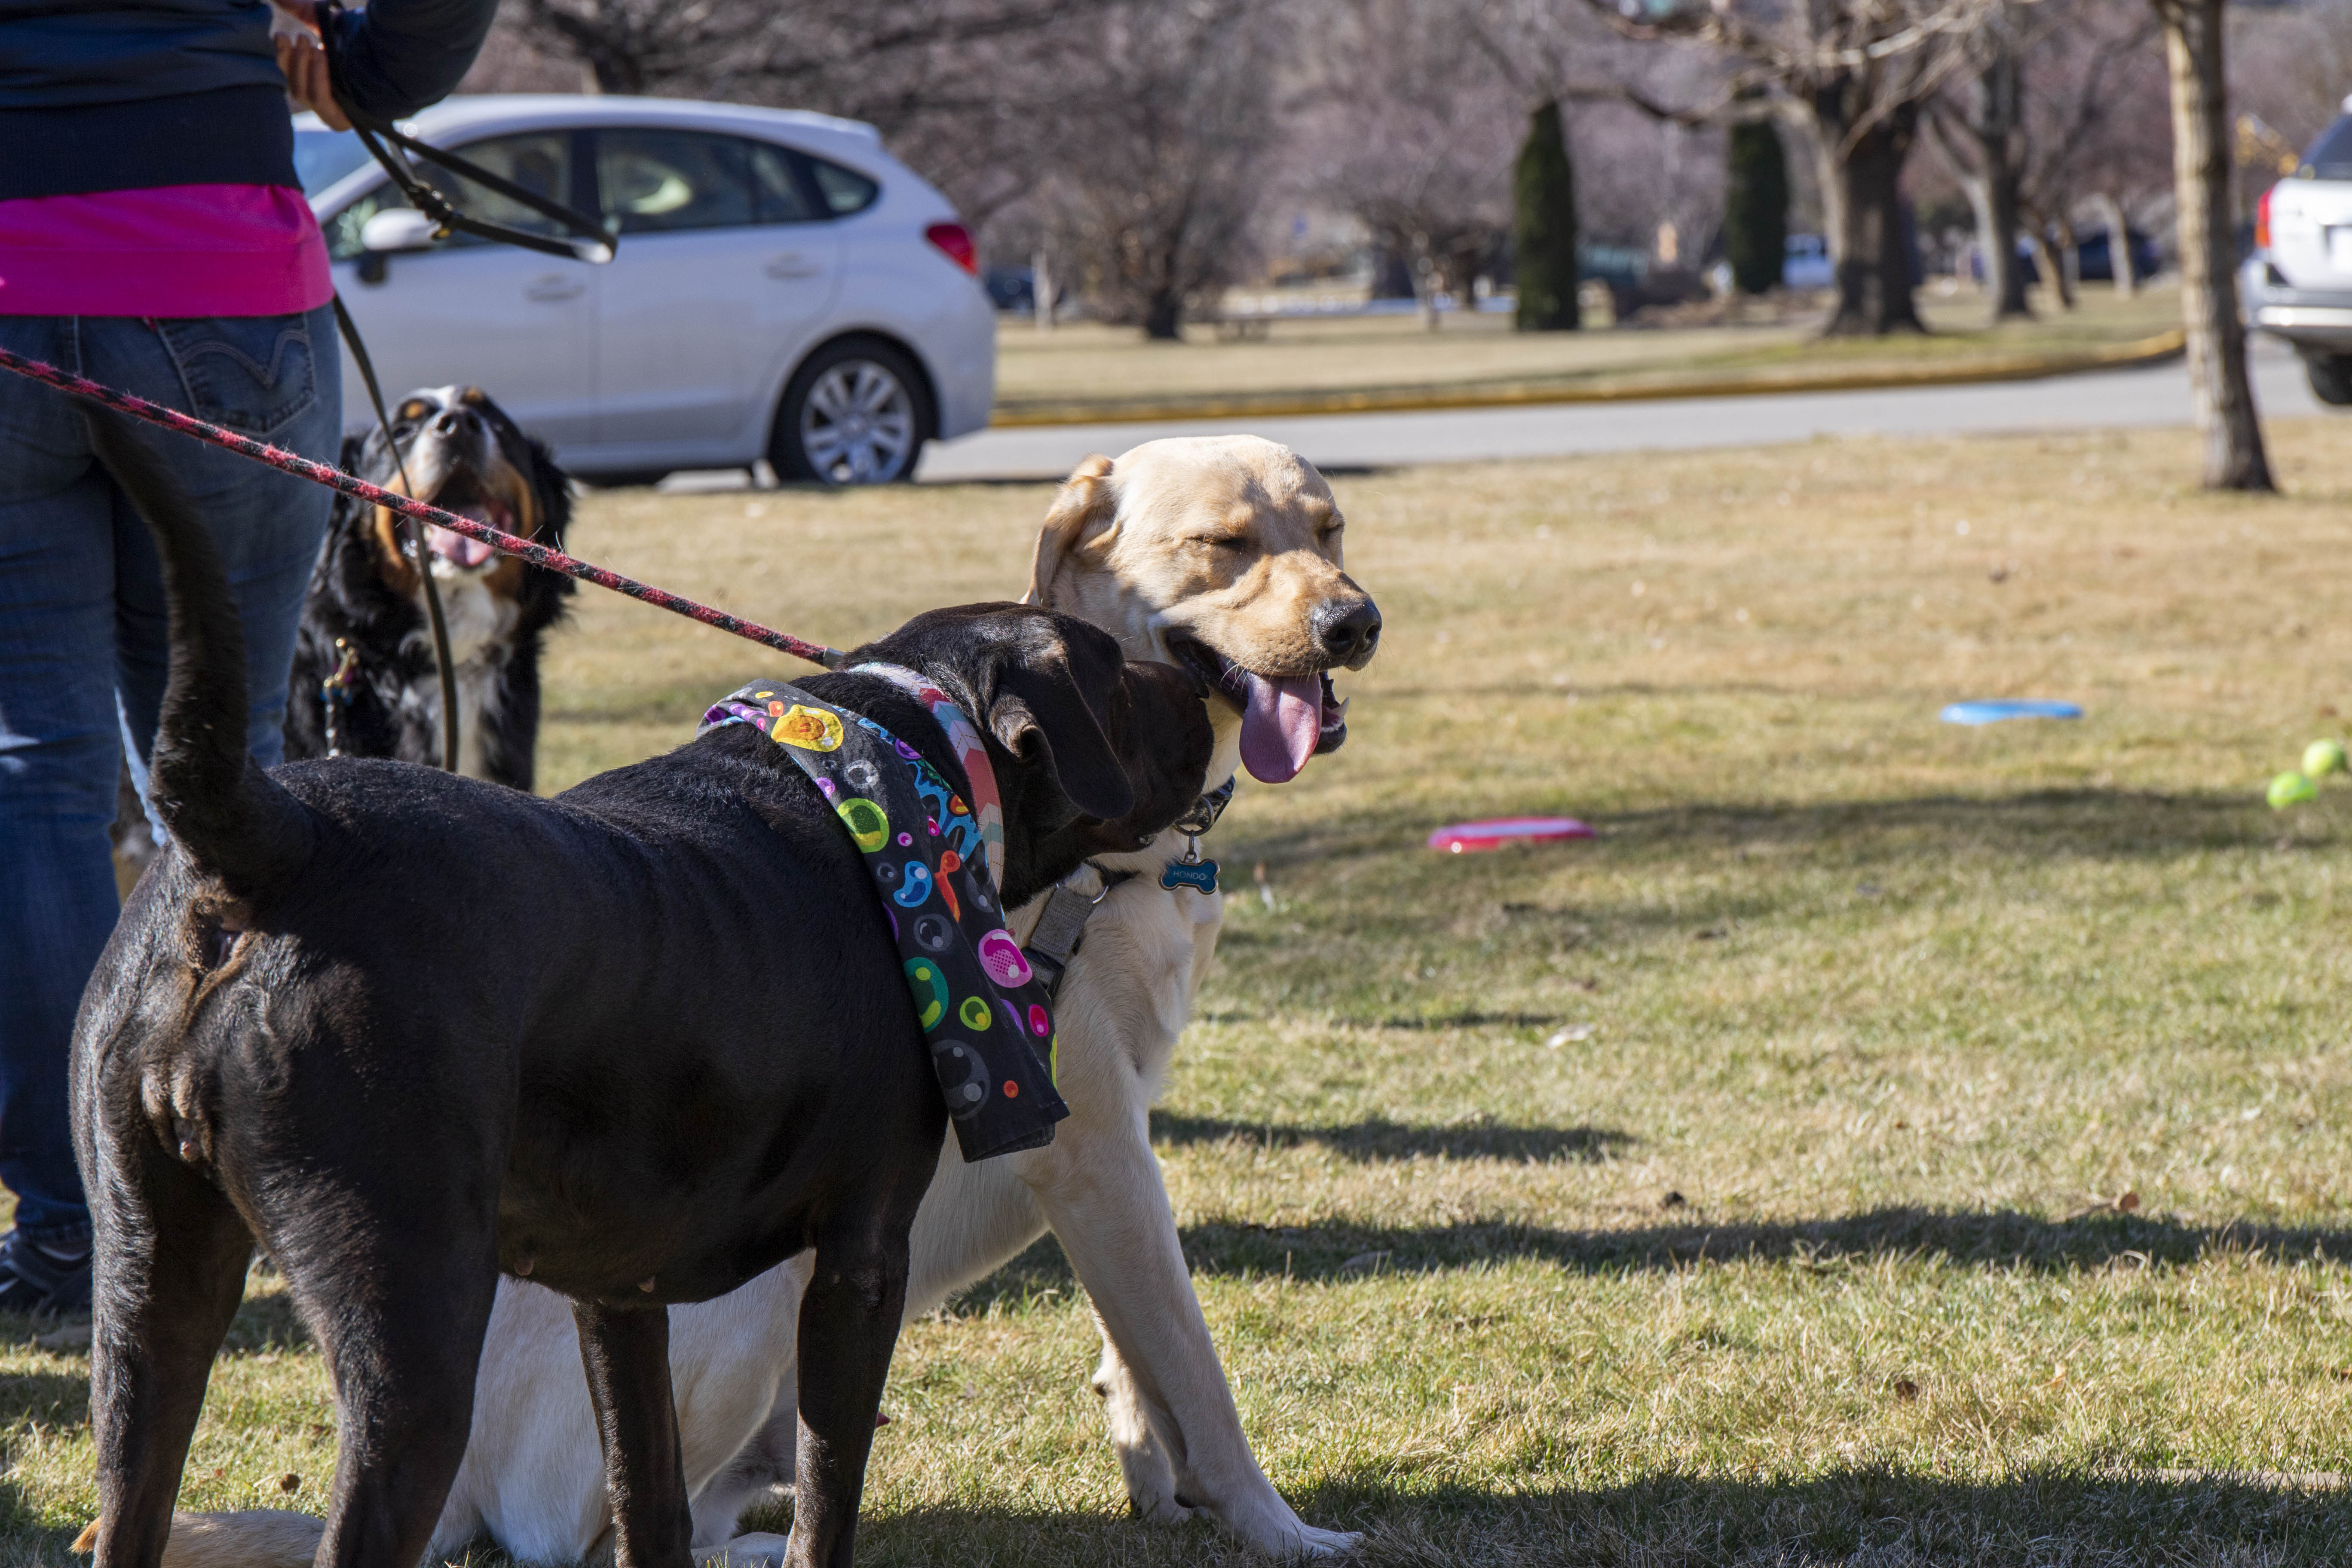 With TreeFort taking place next week, different forts have started around Boise. On Saturday in Ann Morrison, Park PetFort brought dog lovers and their puppy pals to a hangout and puppy party. TreeFort will be in full swing next week. (Photos by Axel Quartarone){ }